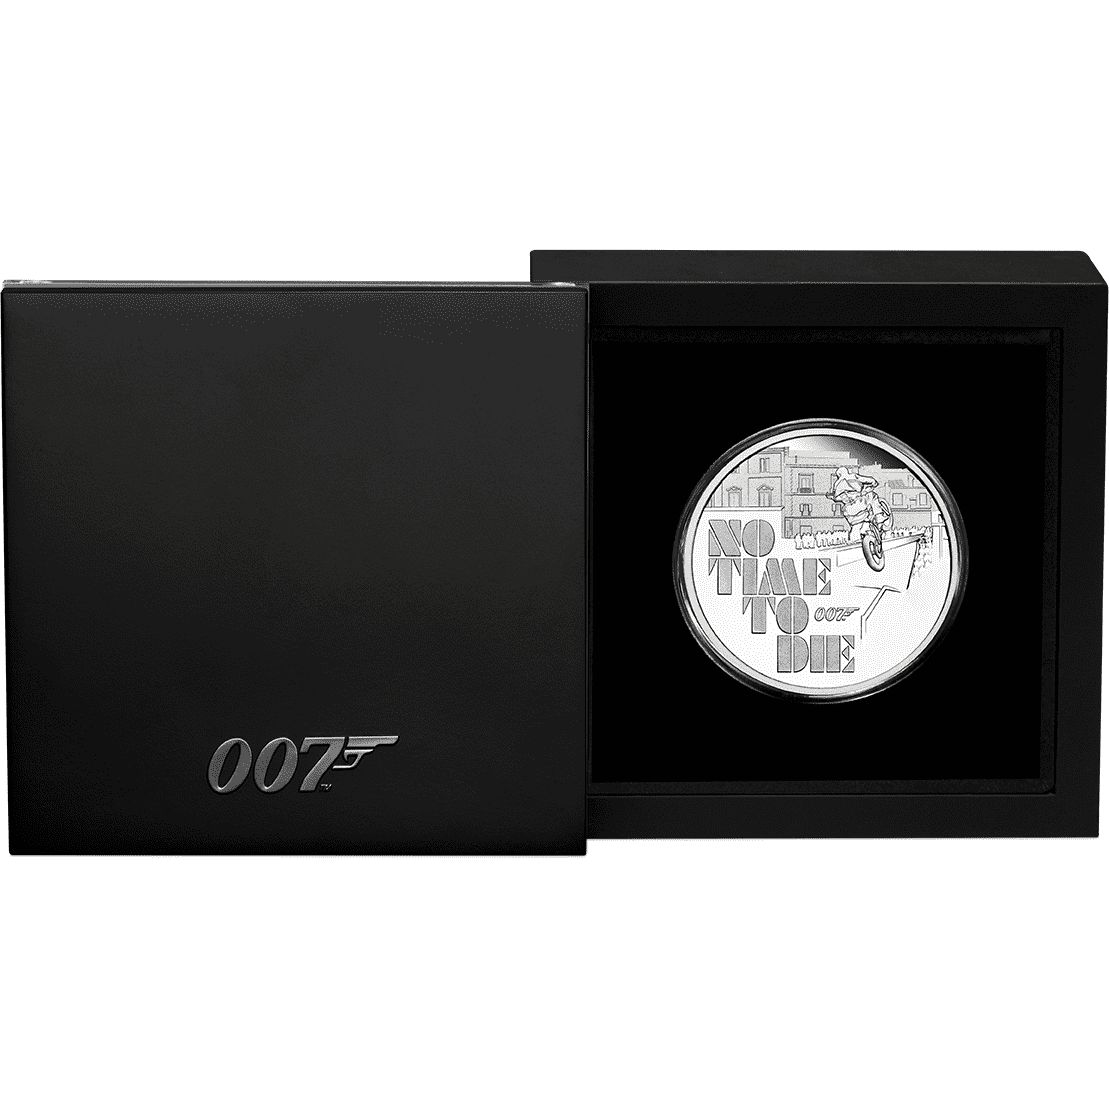 03-2020-James-Bond-No-Time-To-Die-1oz-Silver-Proof-Coin-InCase-LowRes_c0dfcf5a-1655-4111-ae81-2dd705646c9f_2048x2048.png?v=1598348435